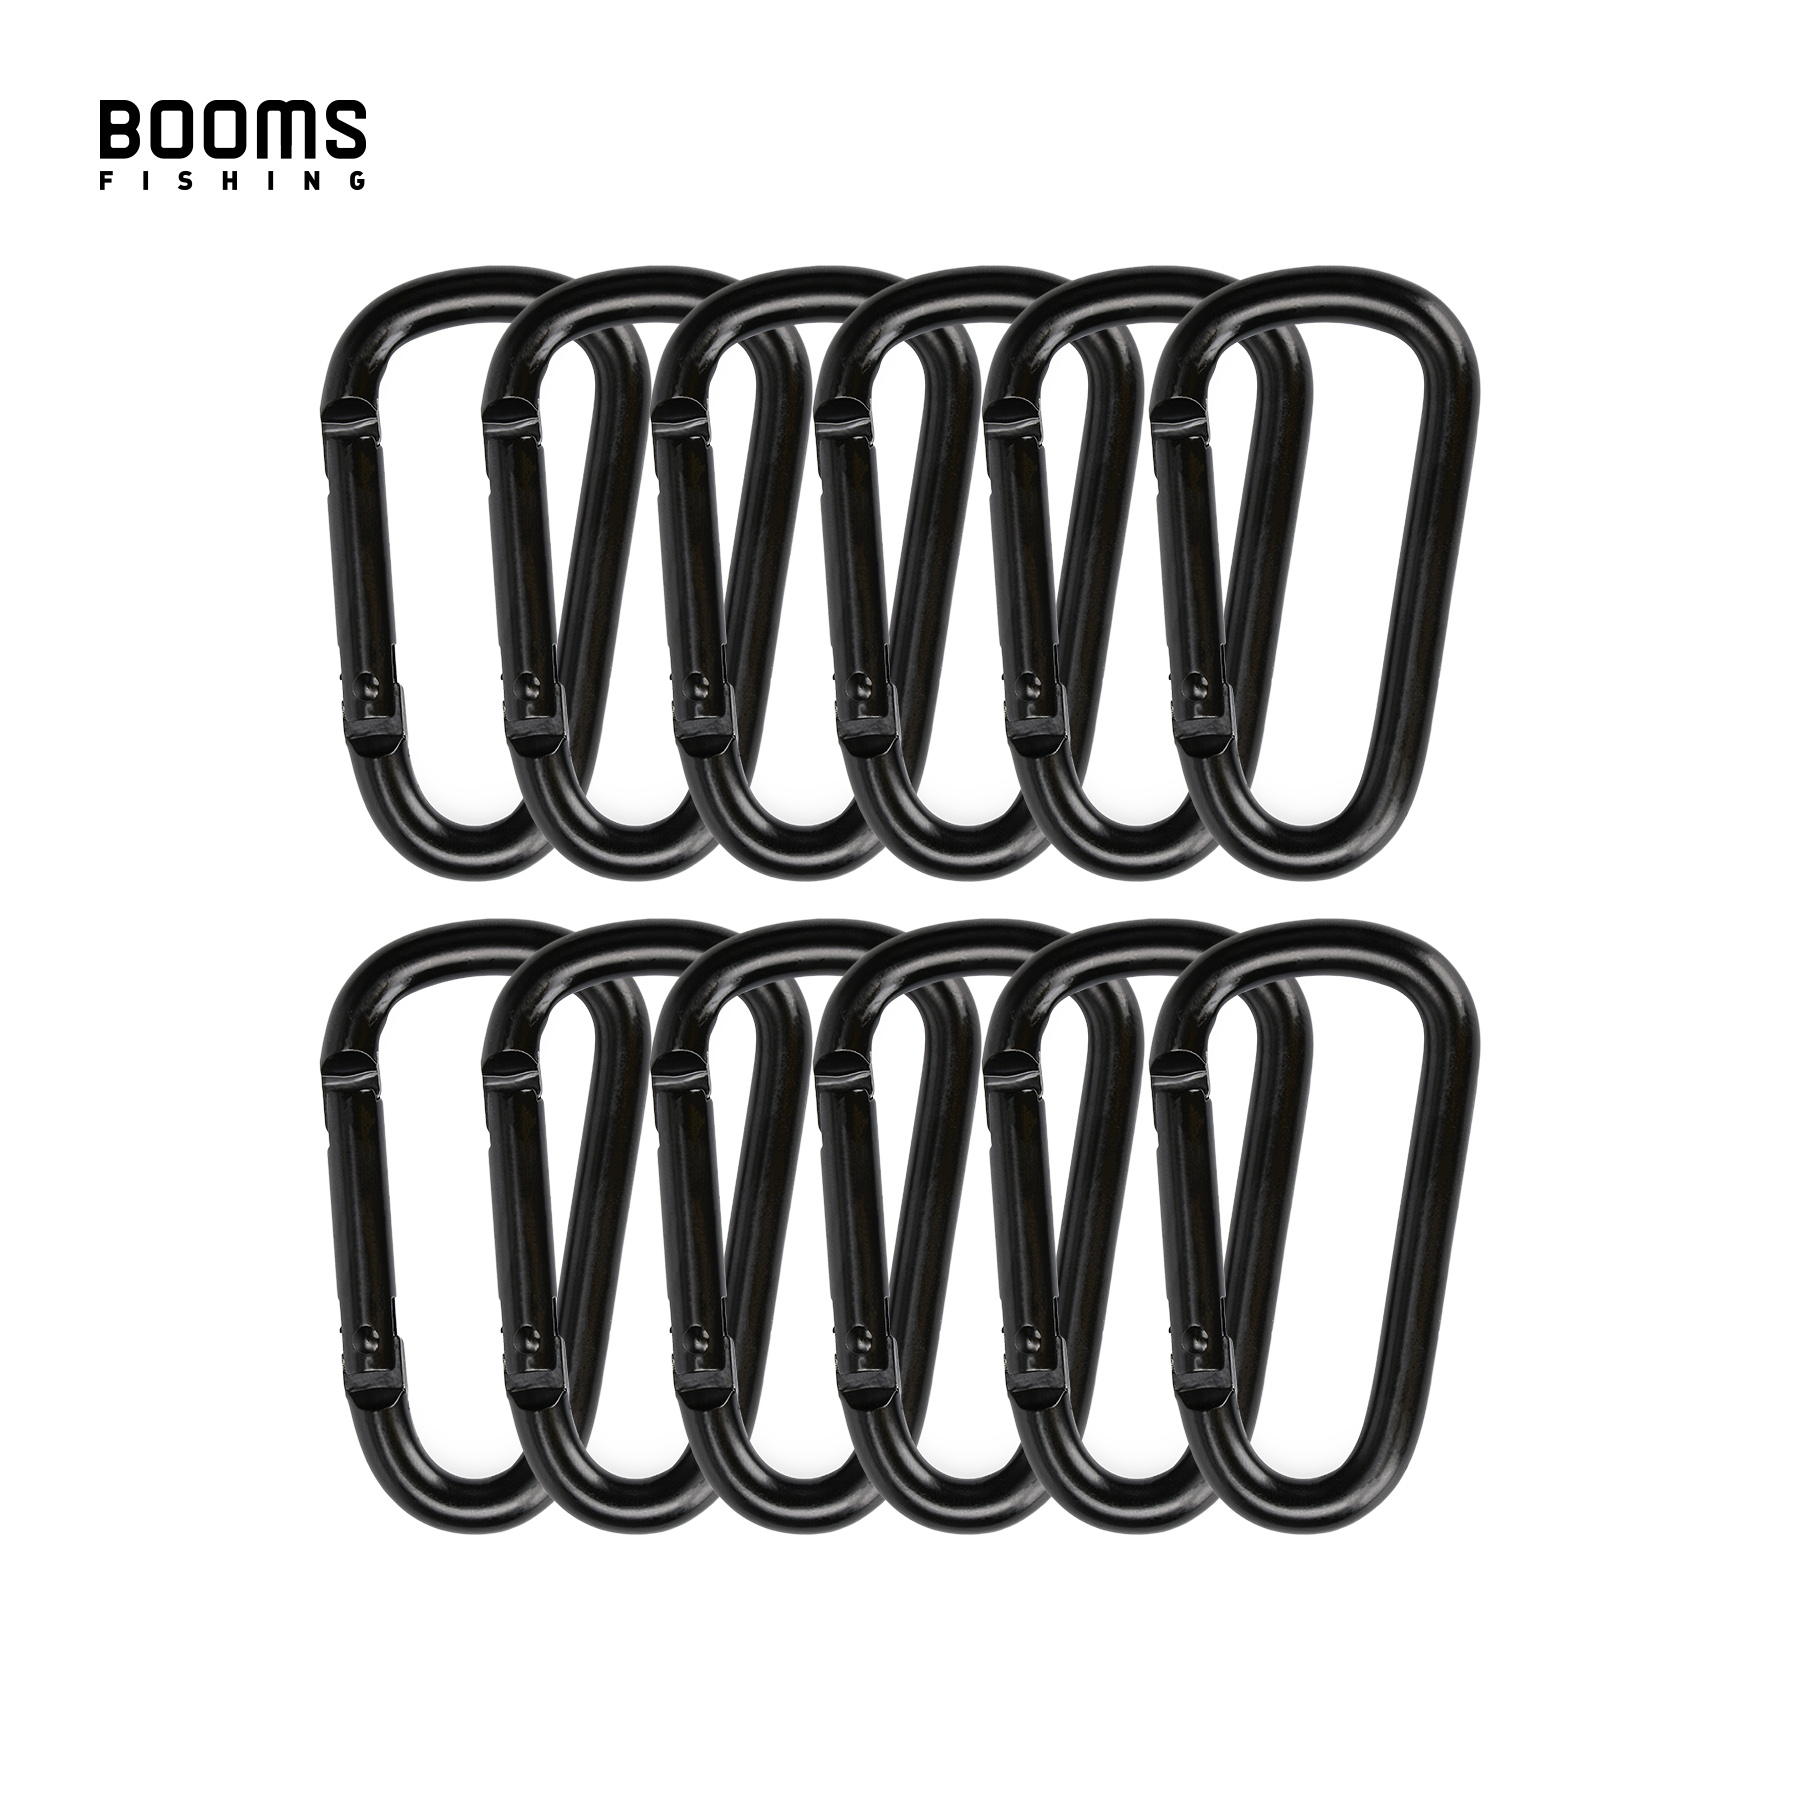 Booms Fishing CC2 Multi-Use Aluminum Alloy Carabiner Keychain Clips Outdoor Camping Climbing Snap Clip Lock Buckle Hook